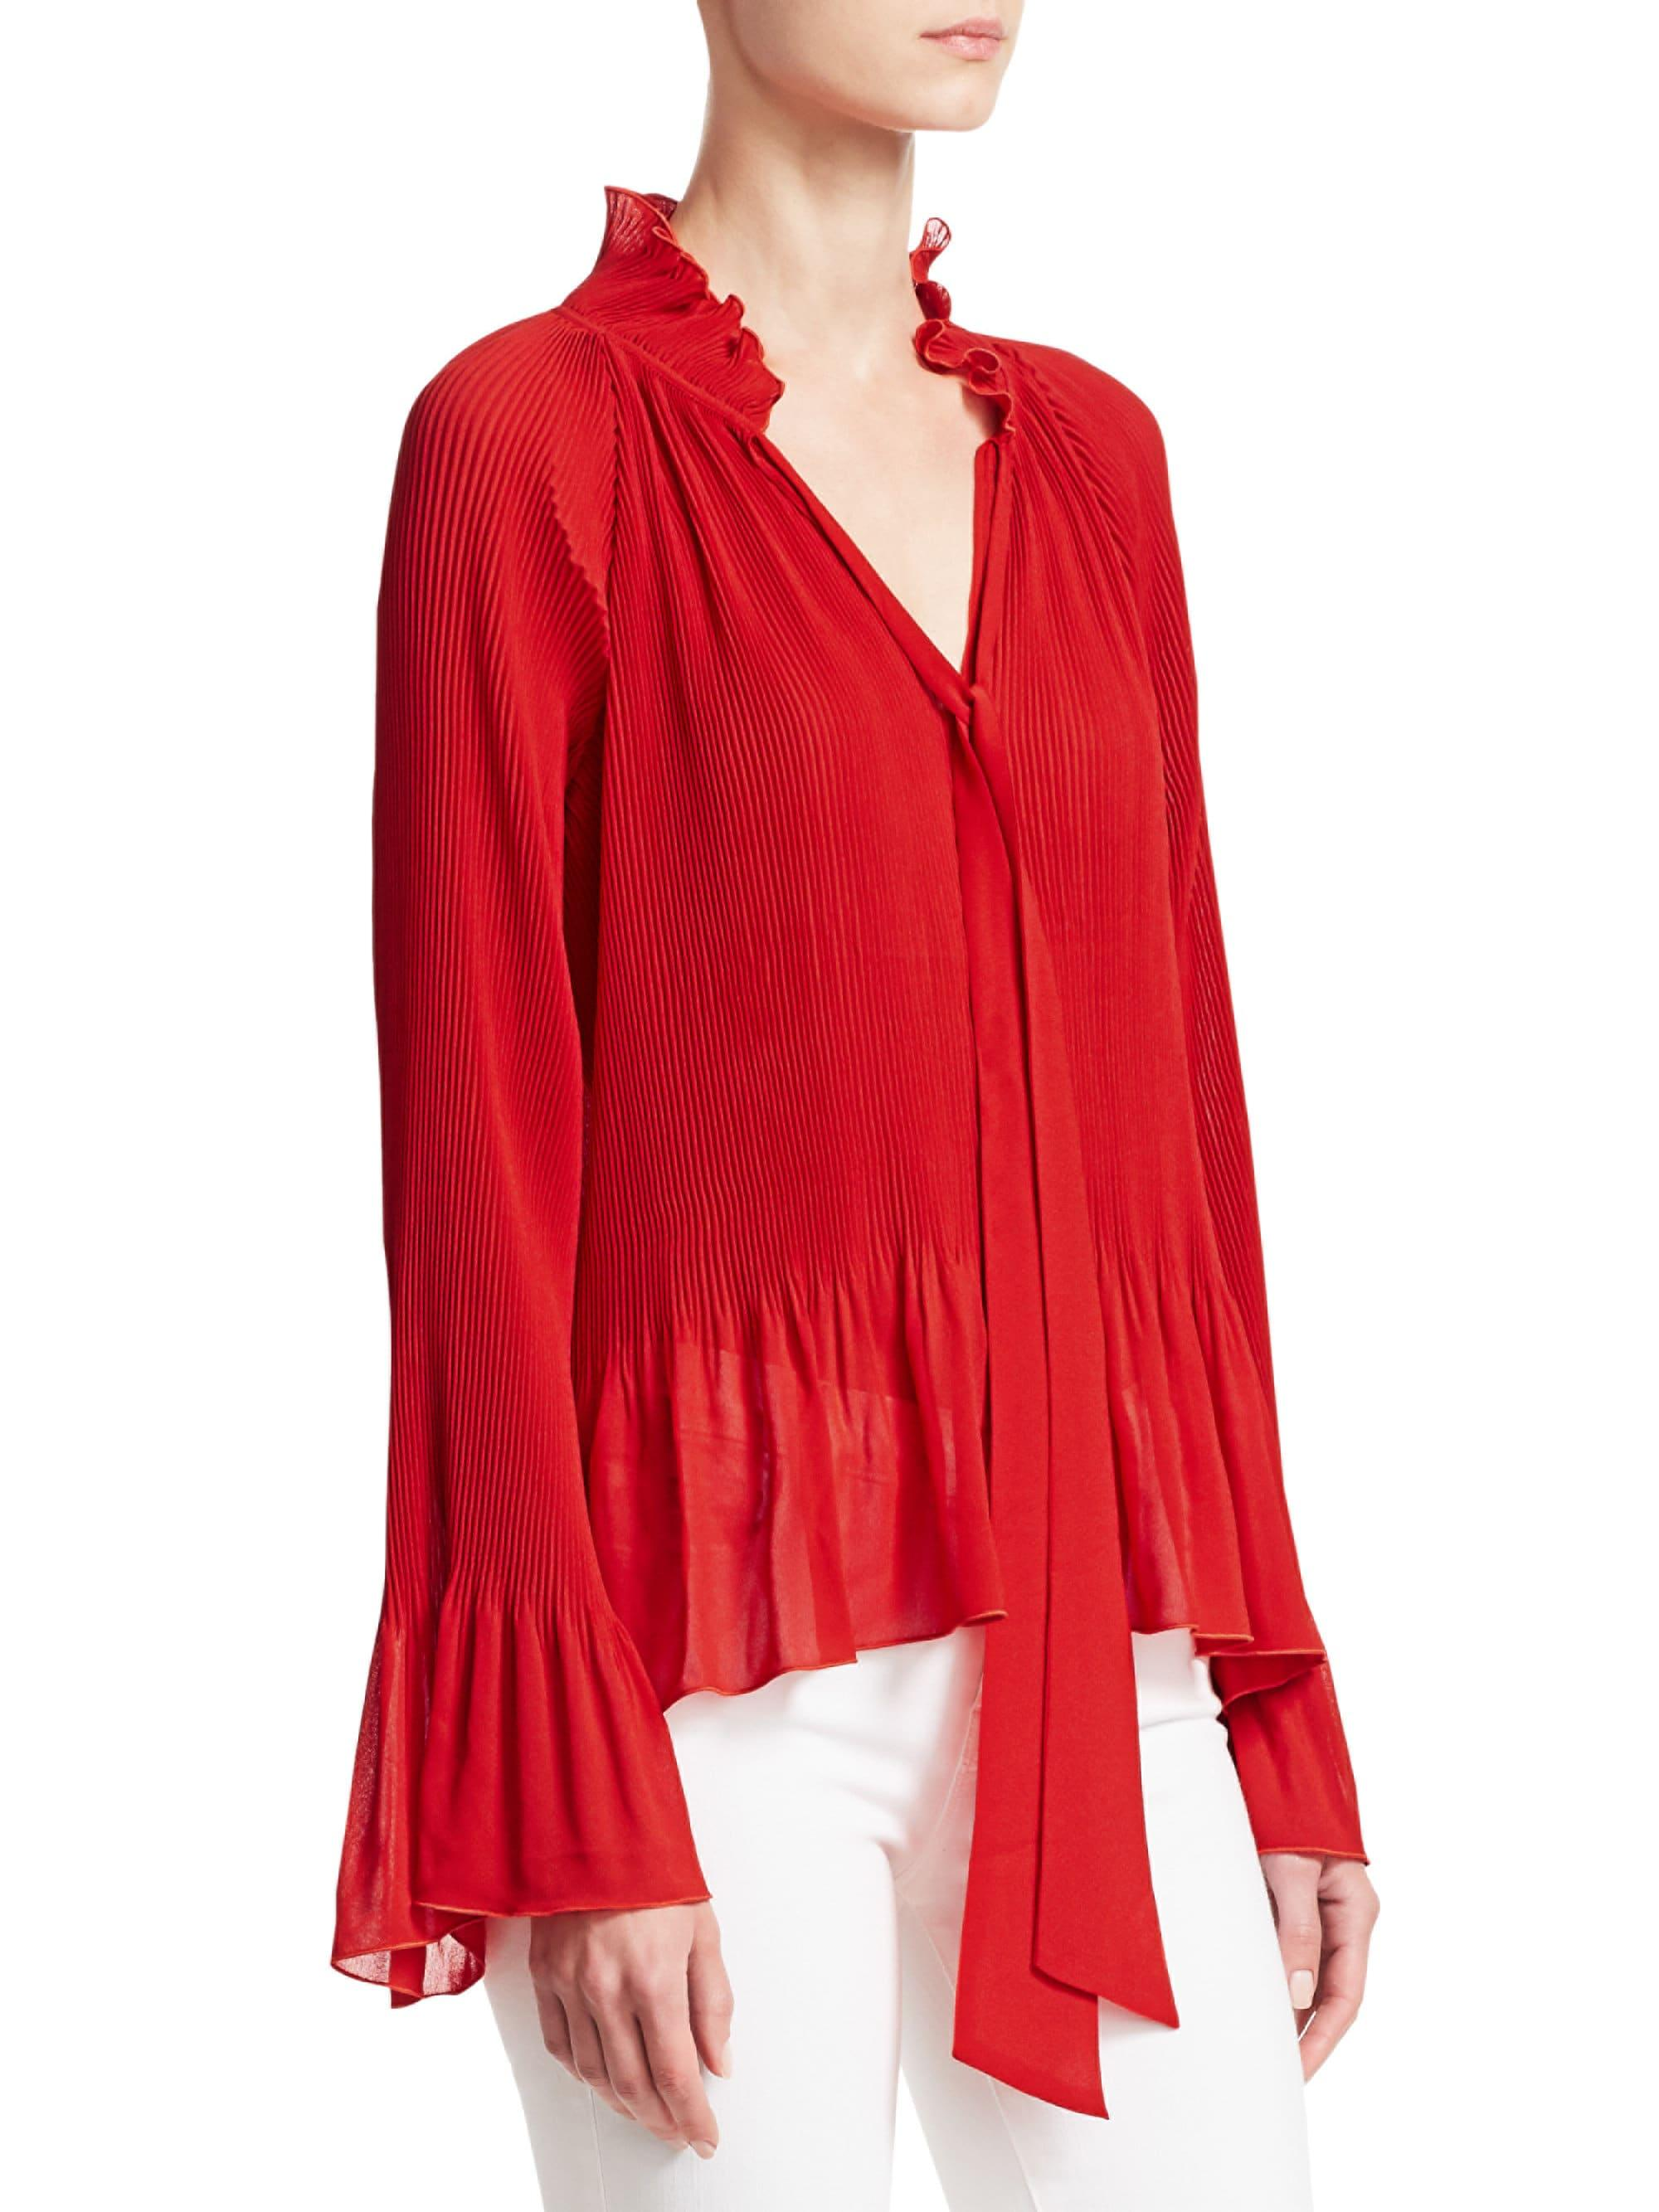 7d26837e3d4d4 Lyst - 10 Crosby Derek Lam Women s Pleated Bell Sleeve Blouse - Red - Size  16 in Red